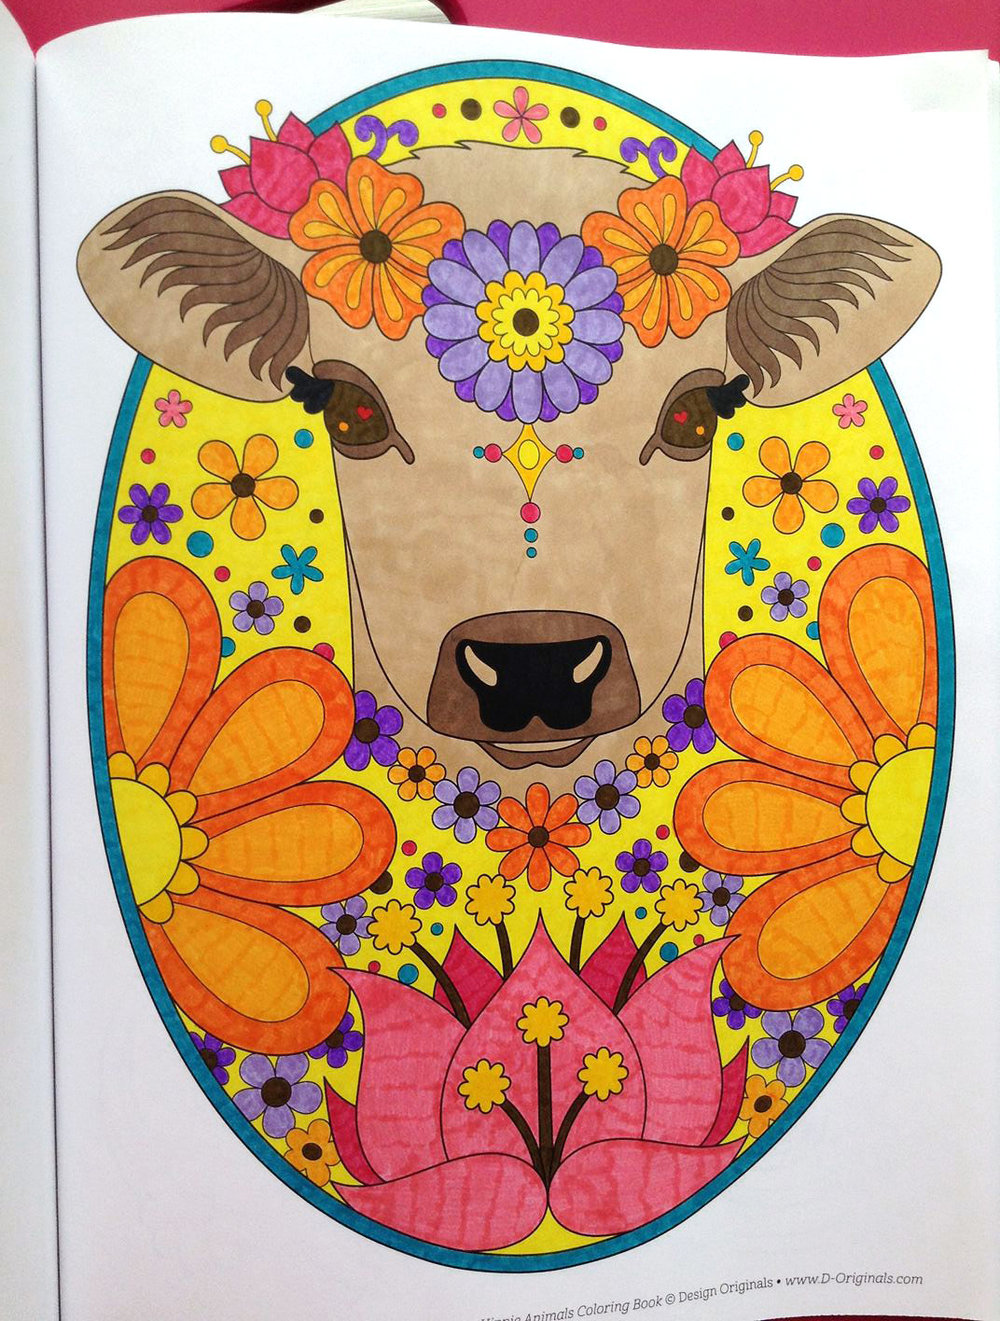 cow-coloring-page-by-Thaneeya-McArdle-colored-by-TammyM.jpg